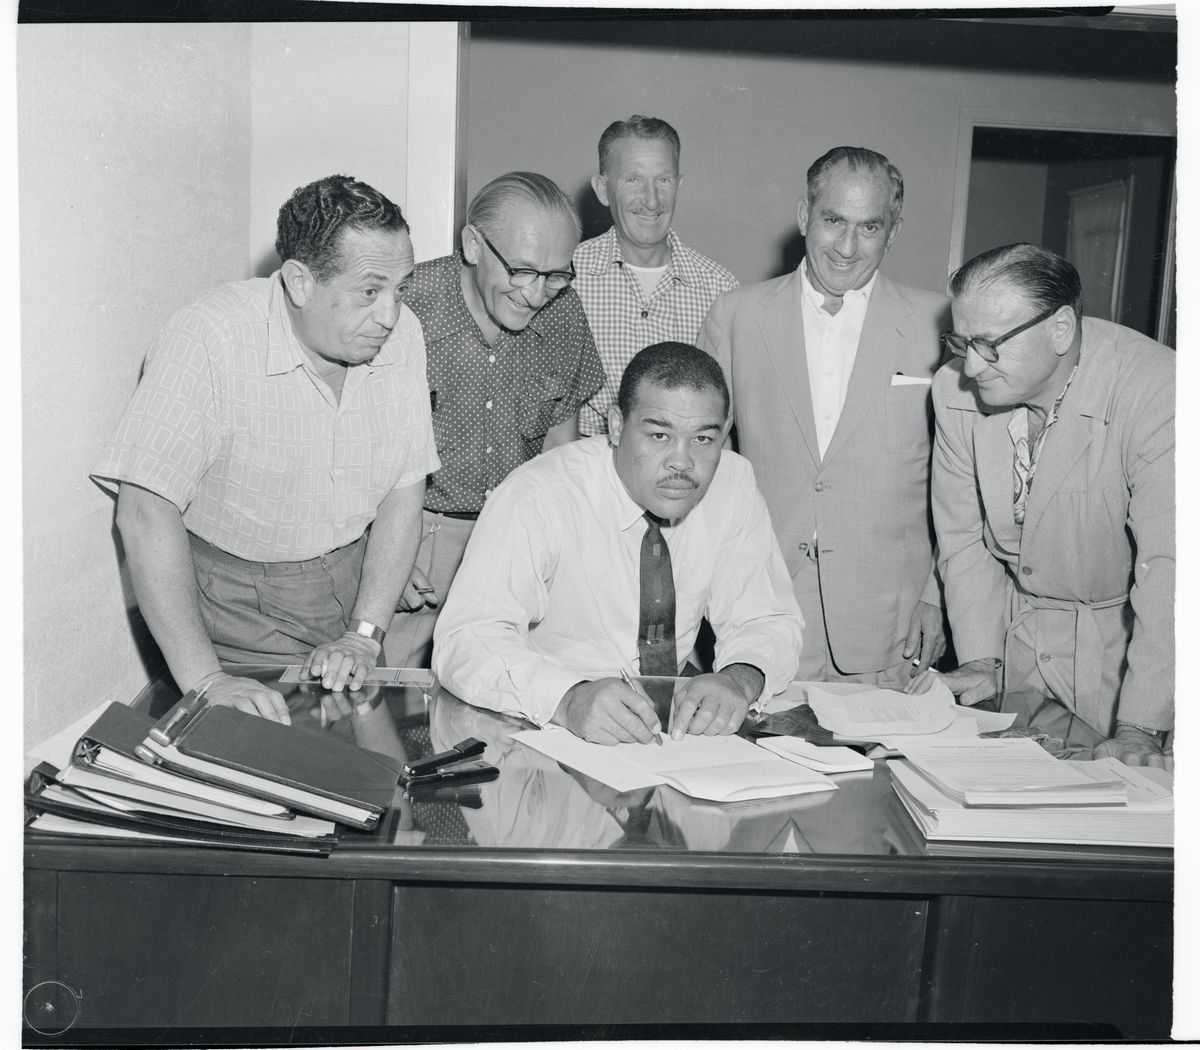 Slide 8 of 50: Former heavyweight champion Joe Louis signs a contract purchasing part interest in Las Vegas's $3,000,000 Moulin Rouge Hotel in 1954.